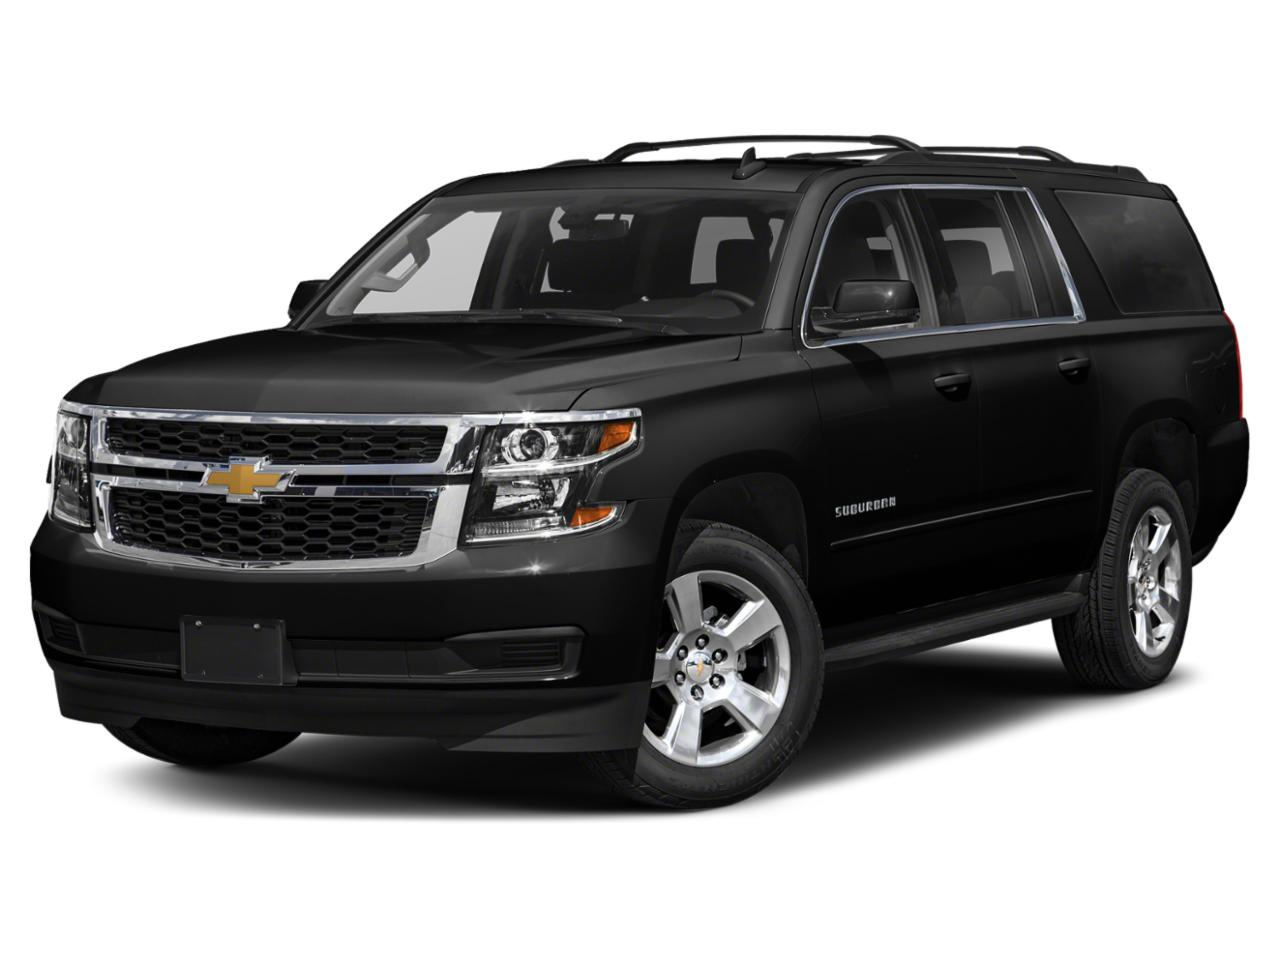 2020 Chevrolet Suburban Vehicle Photo in Nederland, TX 77627